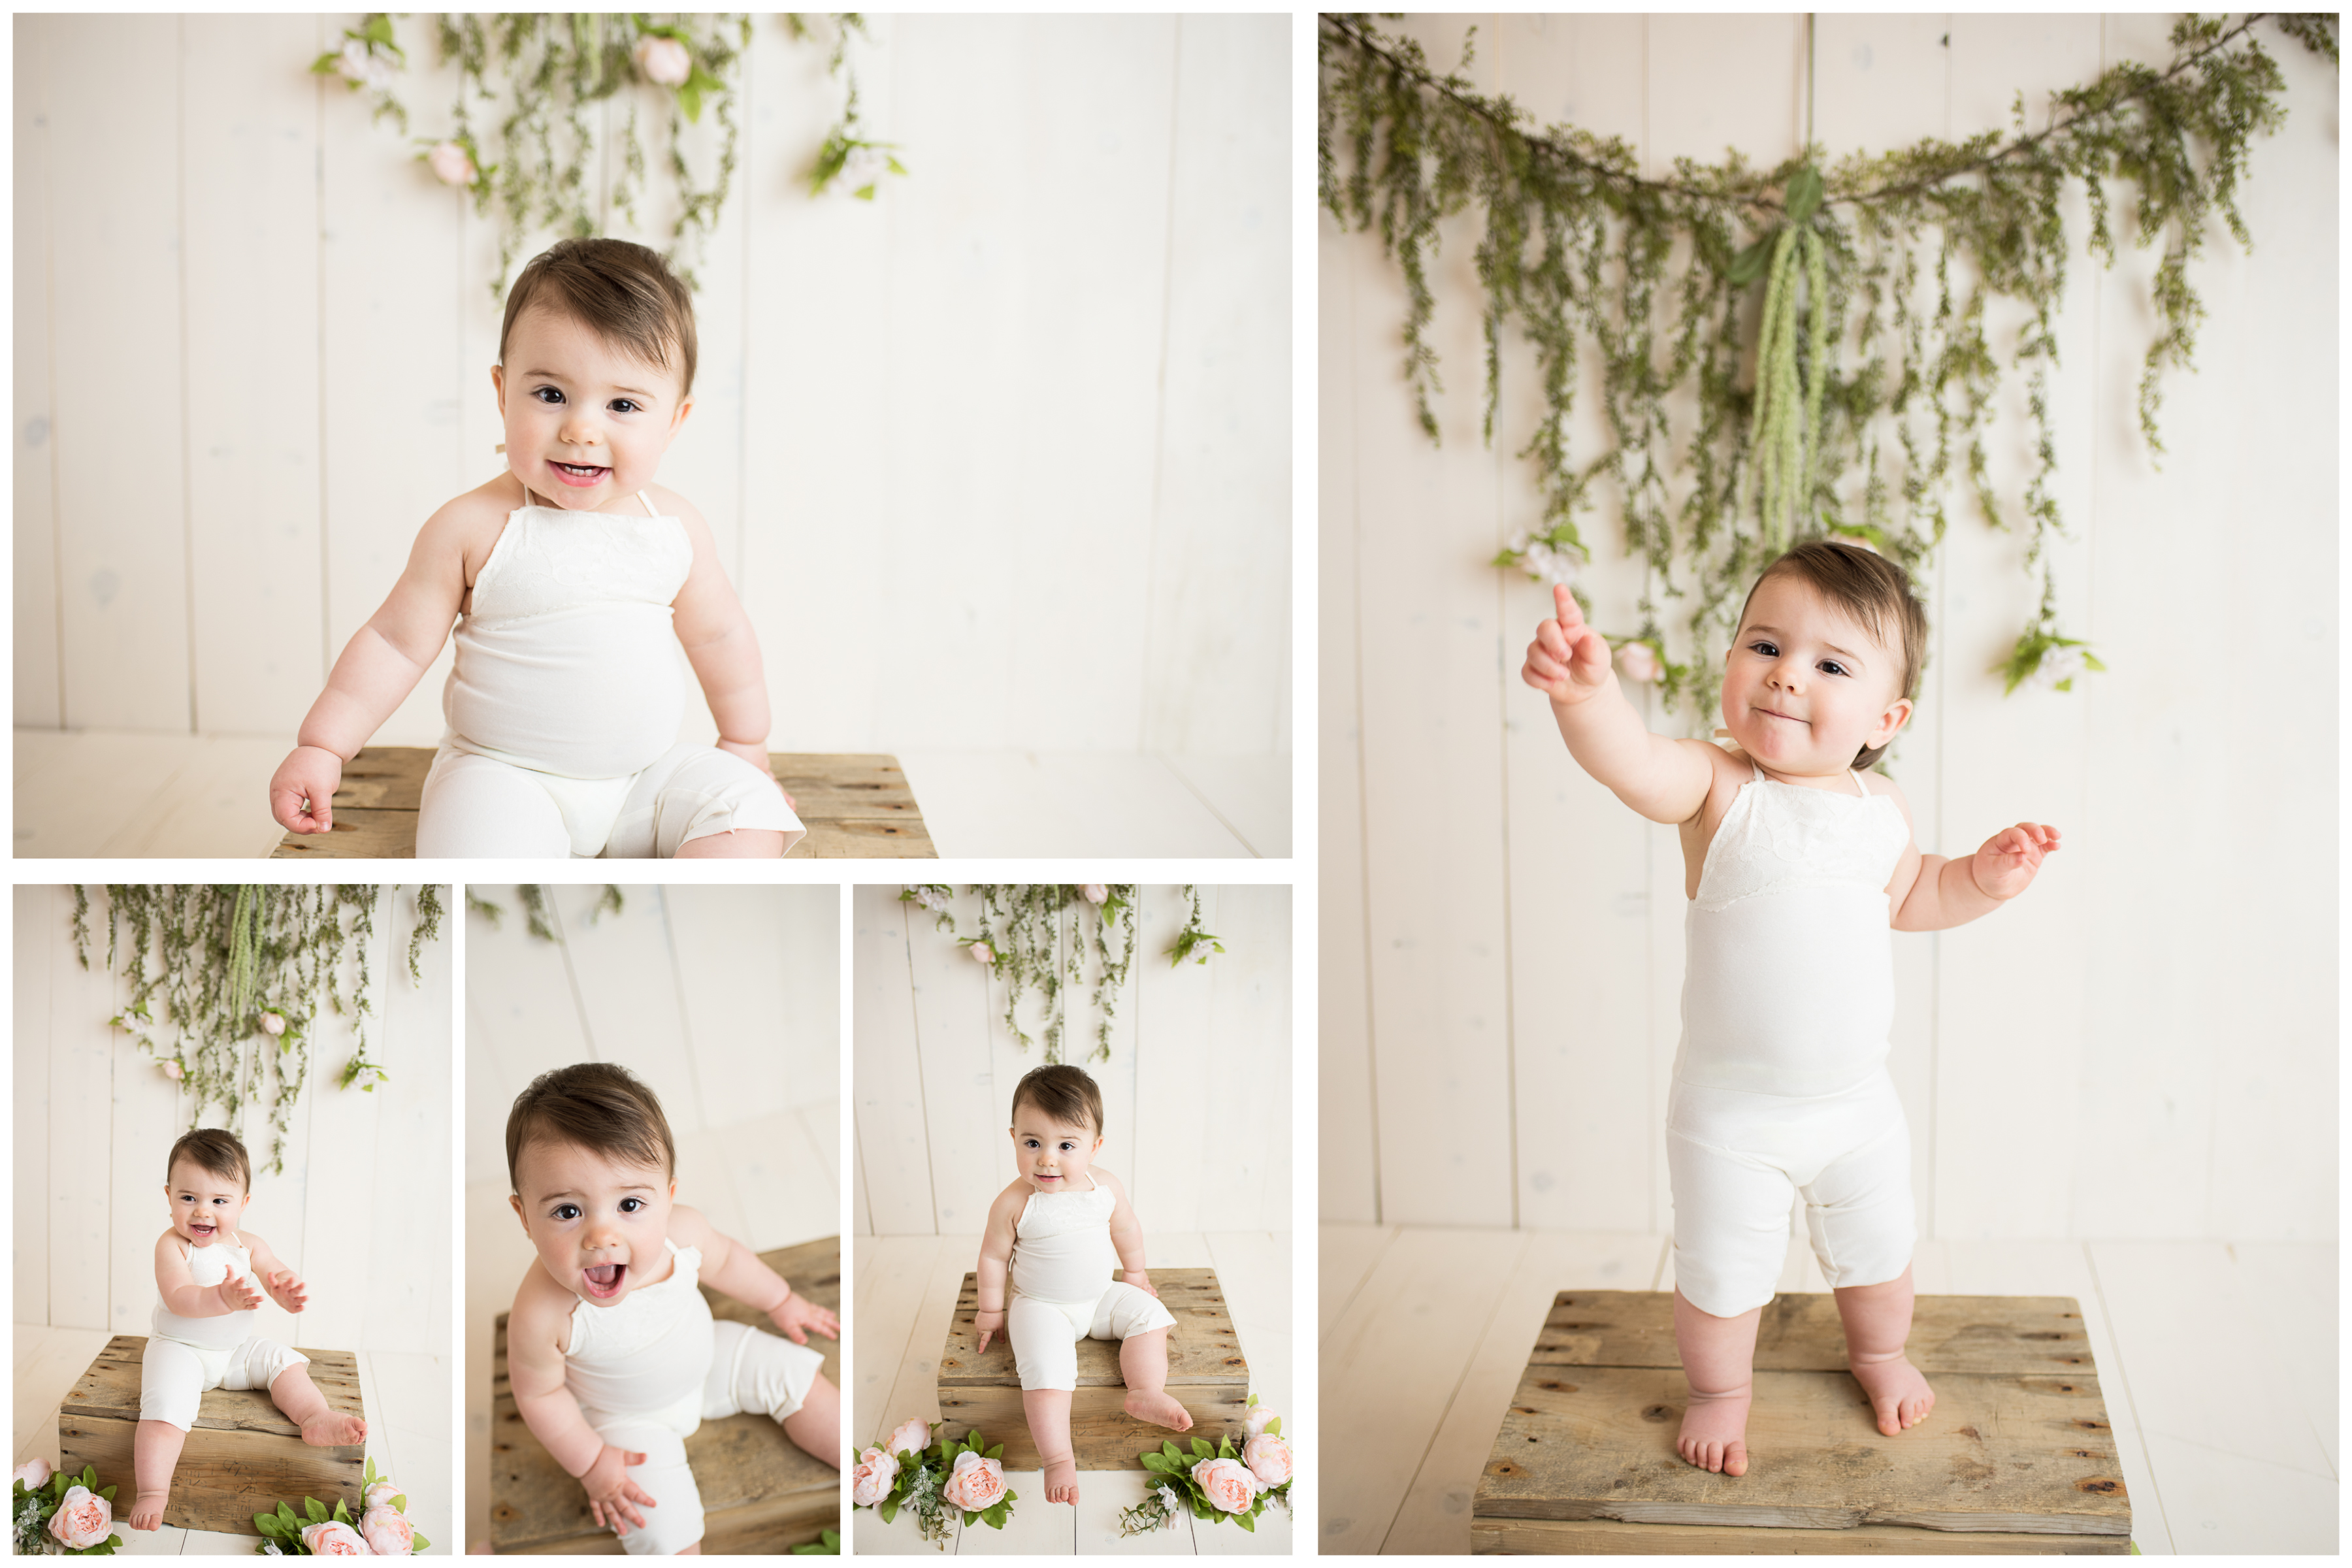 Macomb County, Motherhood photographer, baby, children, one year, gorgeous